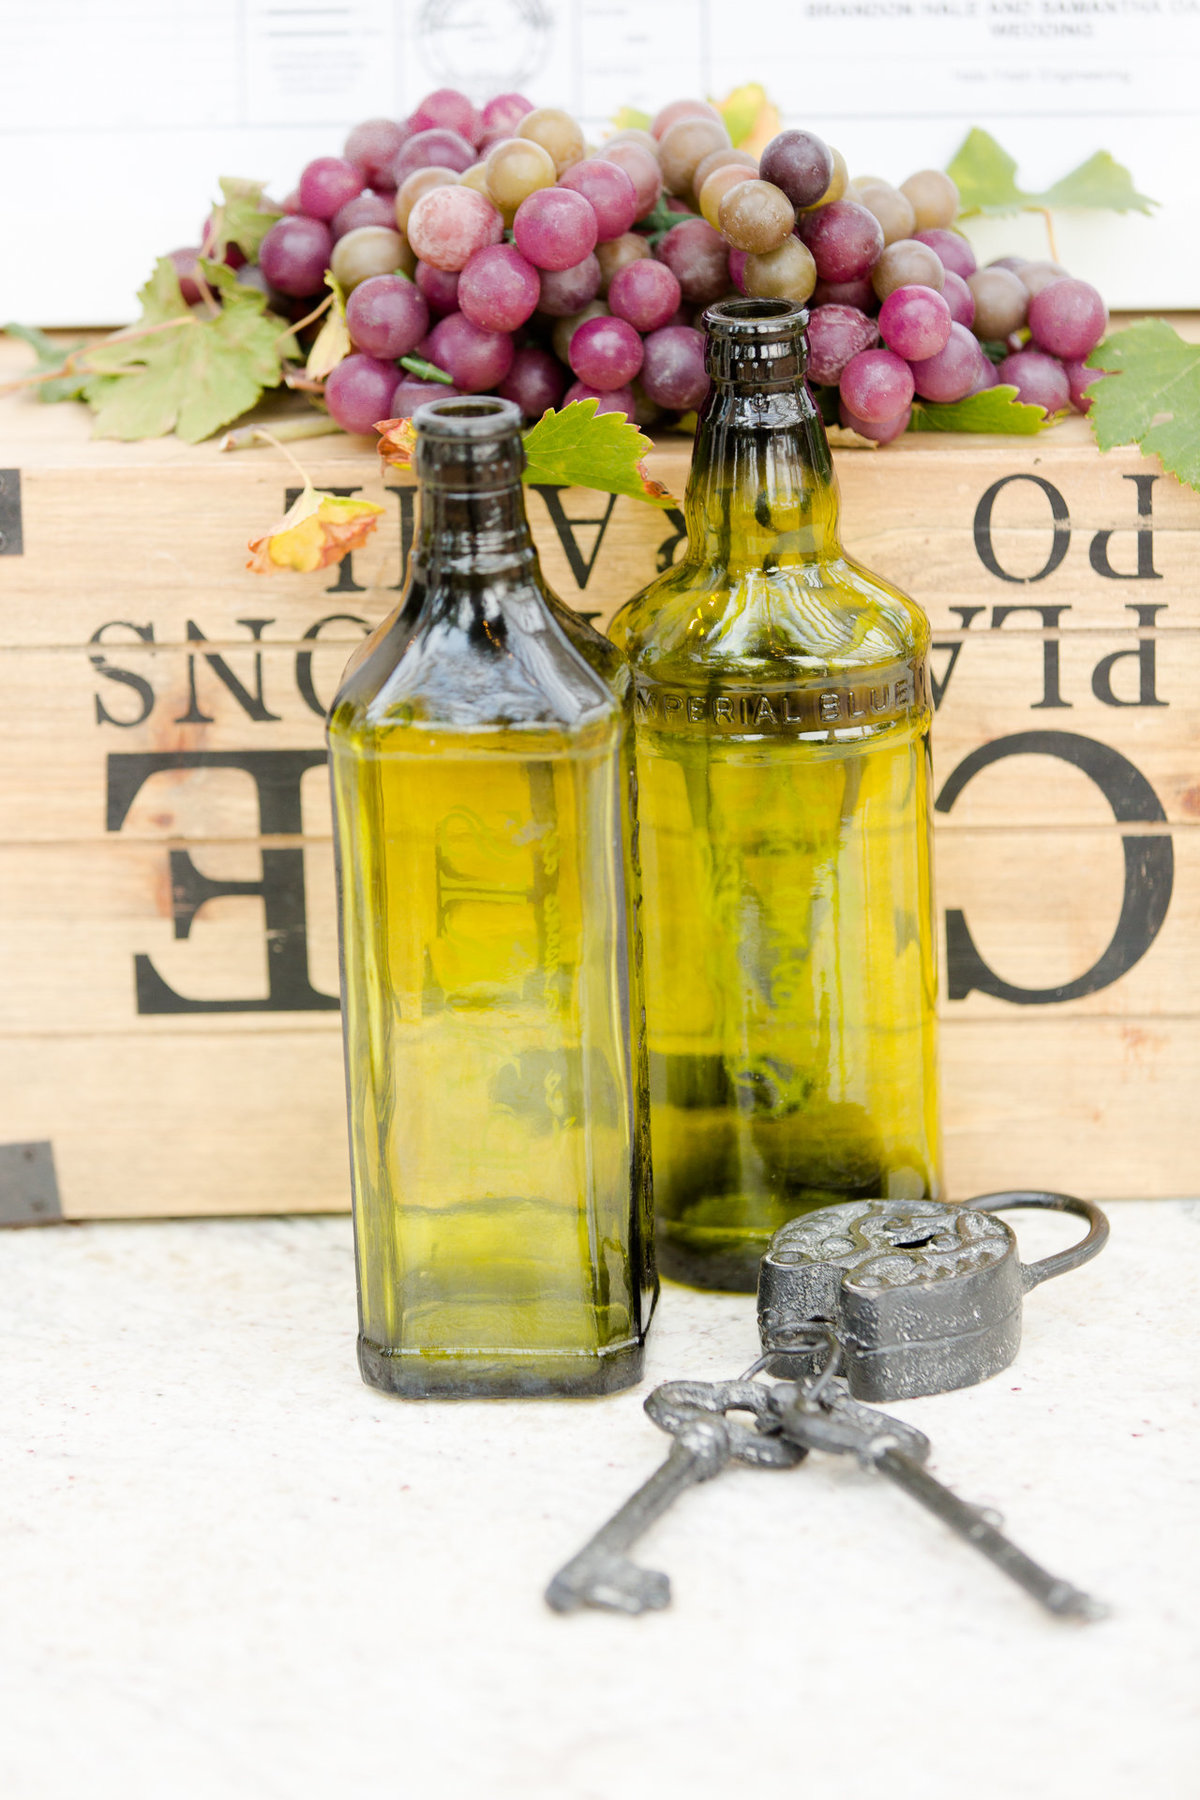 Grape and wine bottle details for a wedding reception at villa de amore by matty fran photography